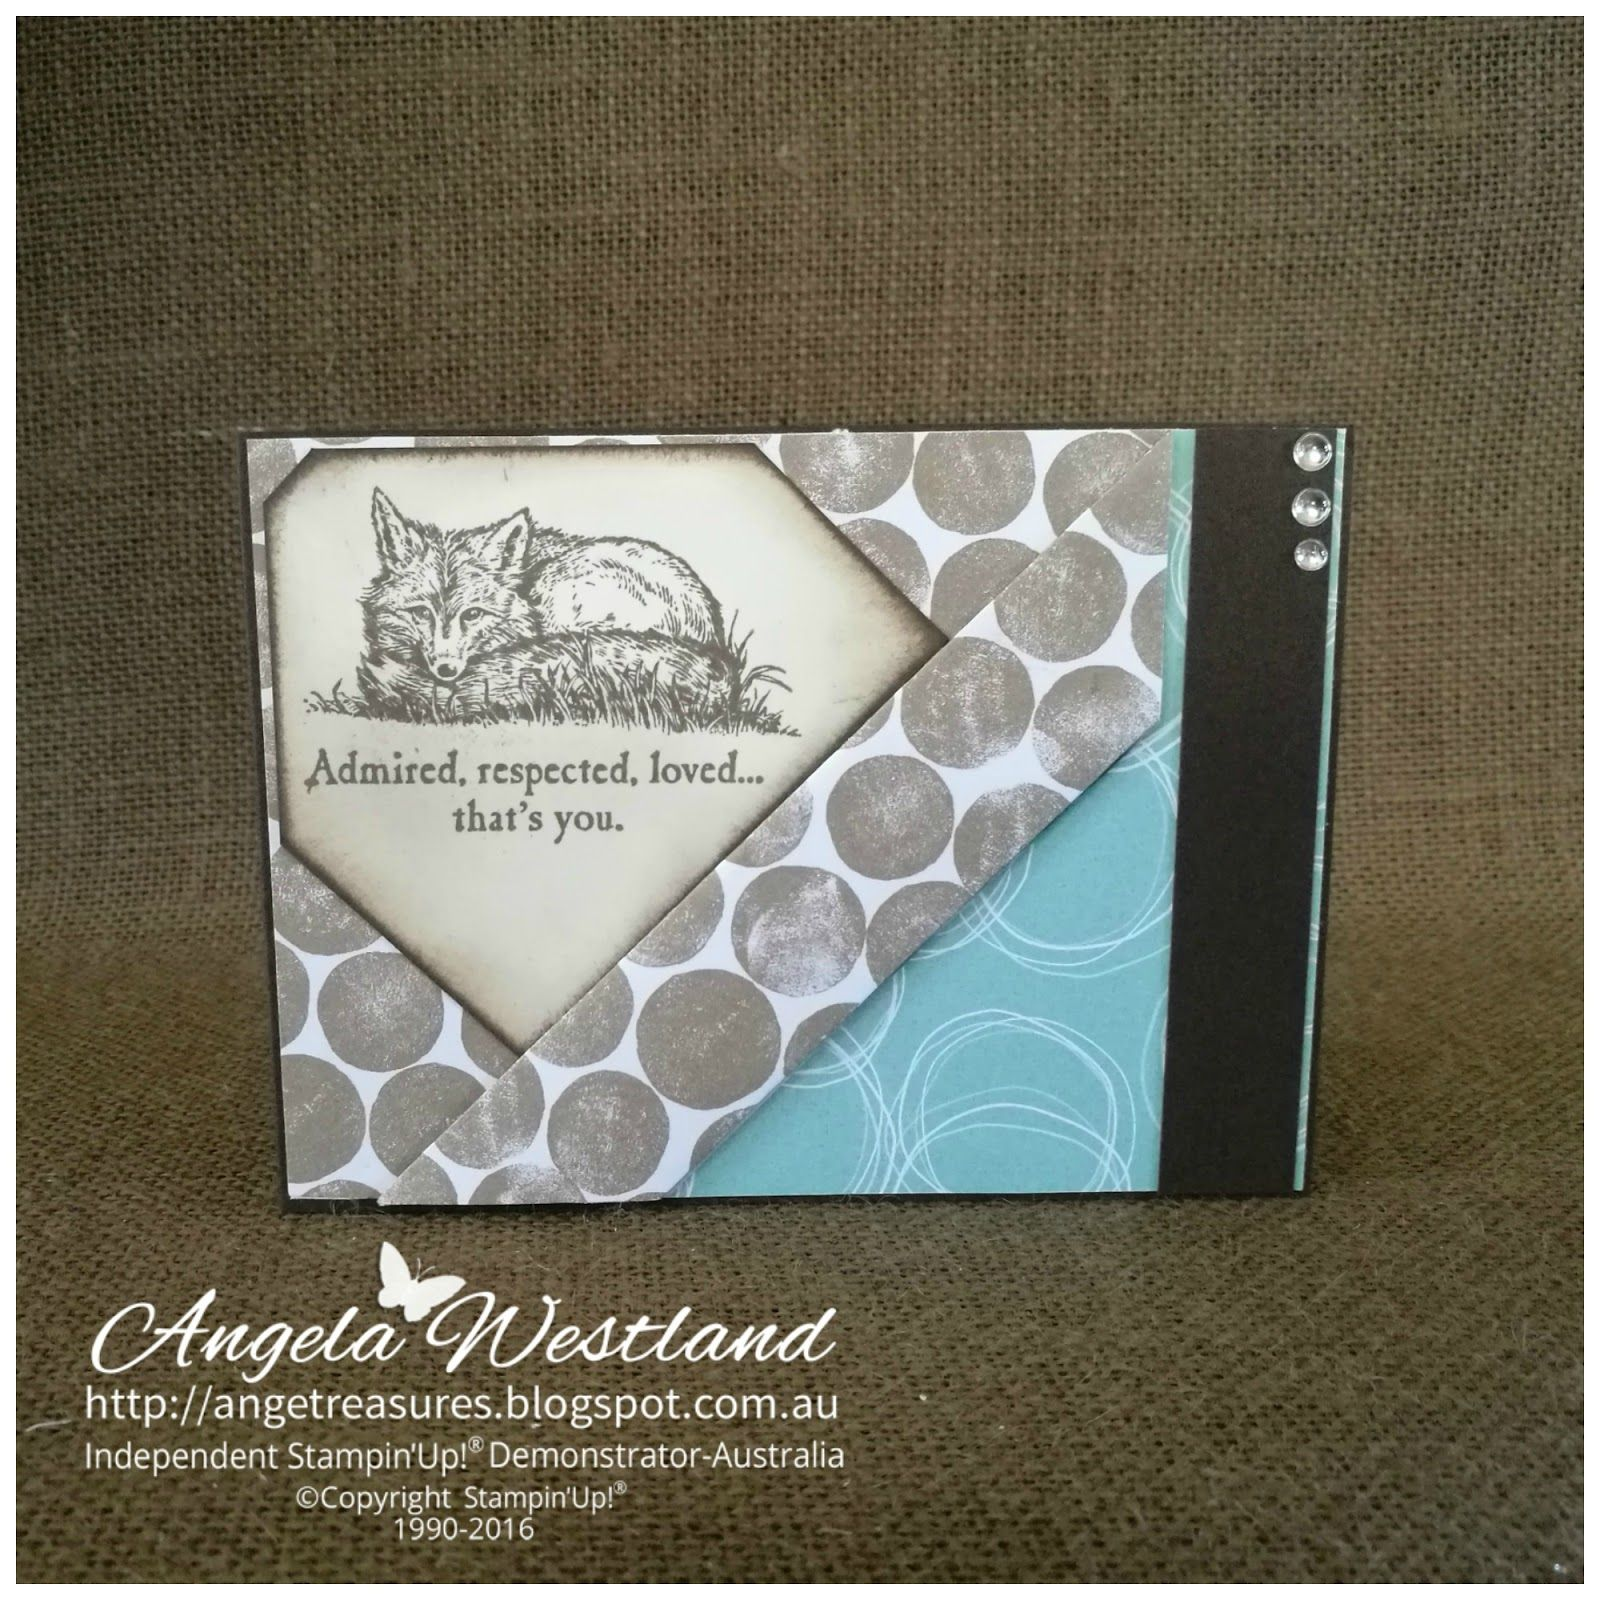 Click on the picture to see more of Angela's Projects. #stampinup #handmadecards #@Stampinupangelawestland #thewildernessawaits #layeredcard #sponging #antiquelook